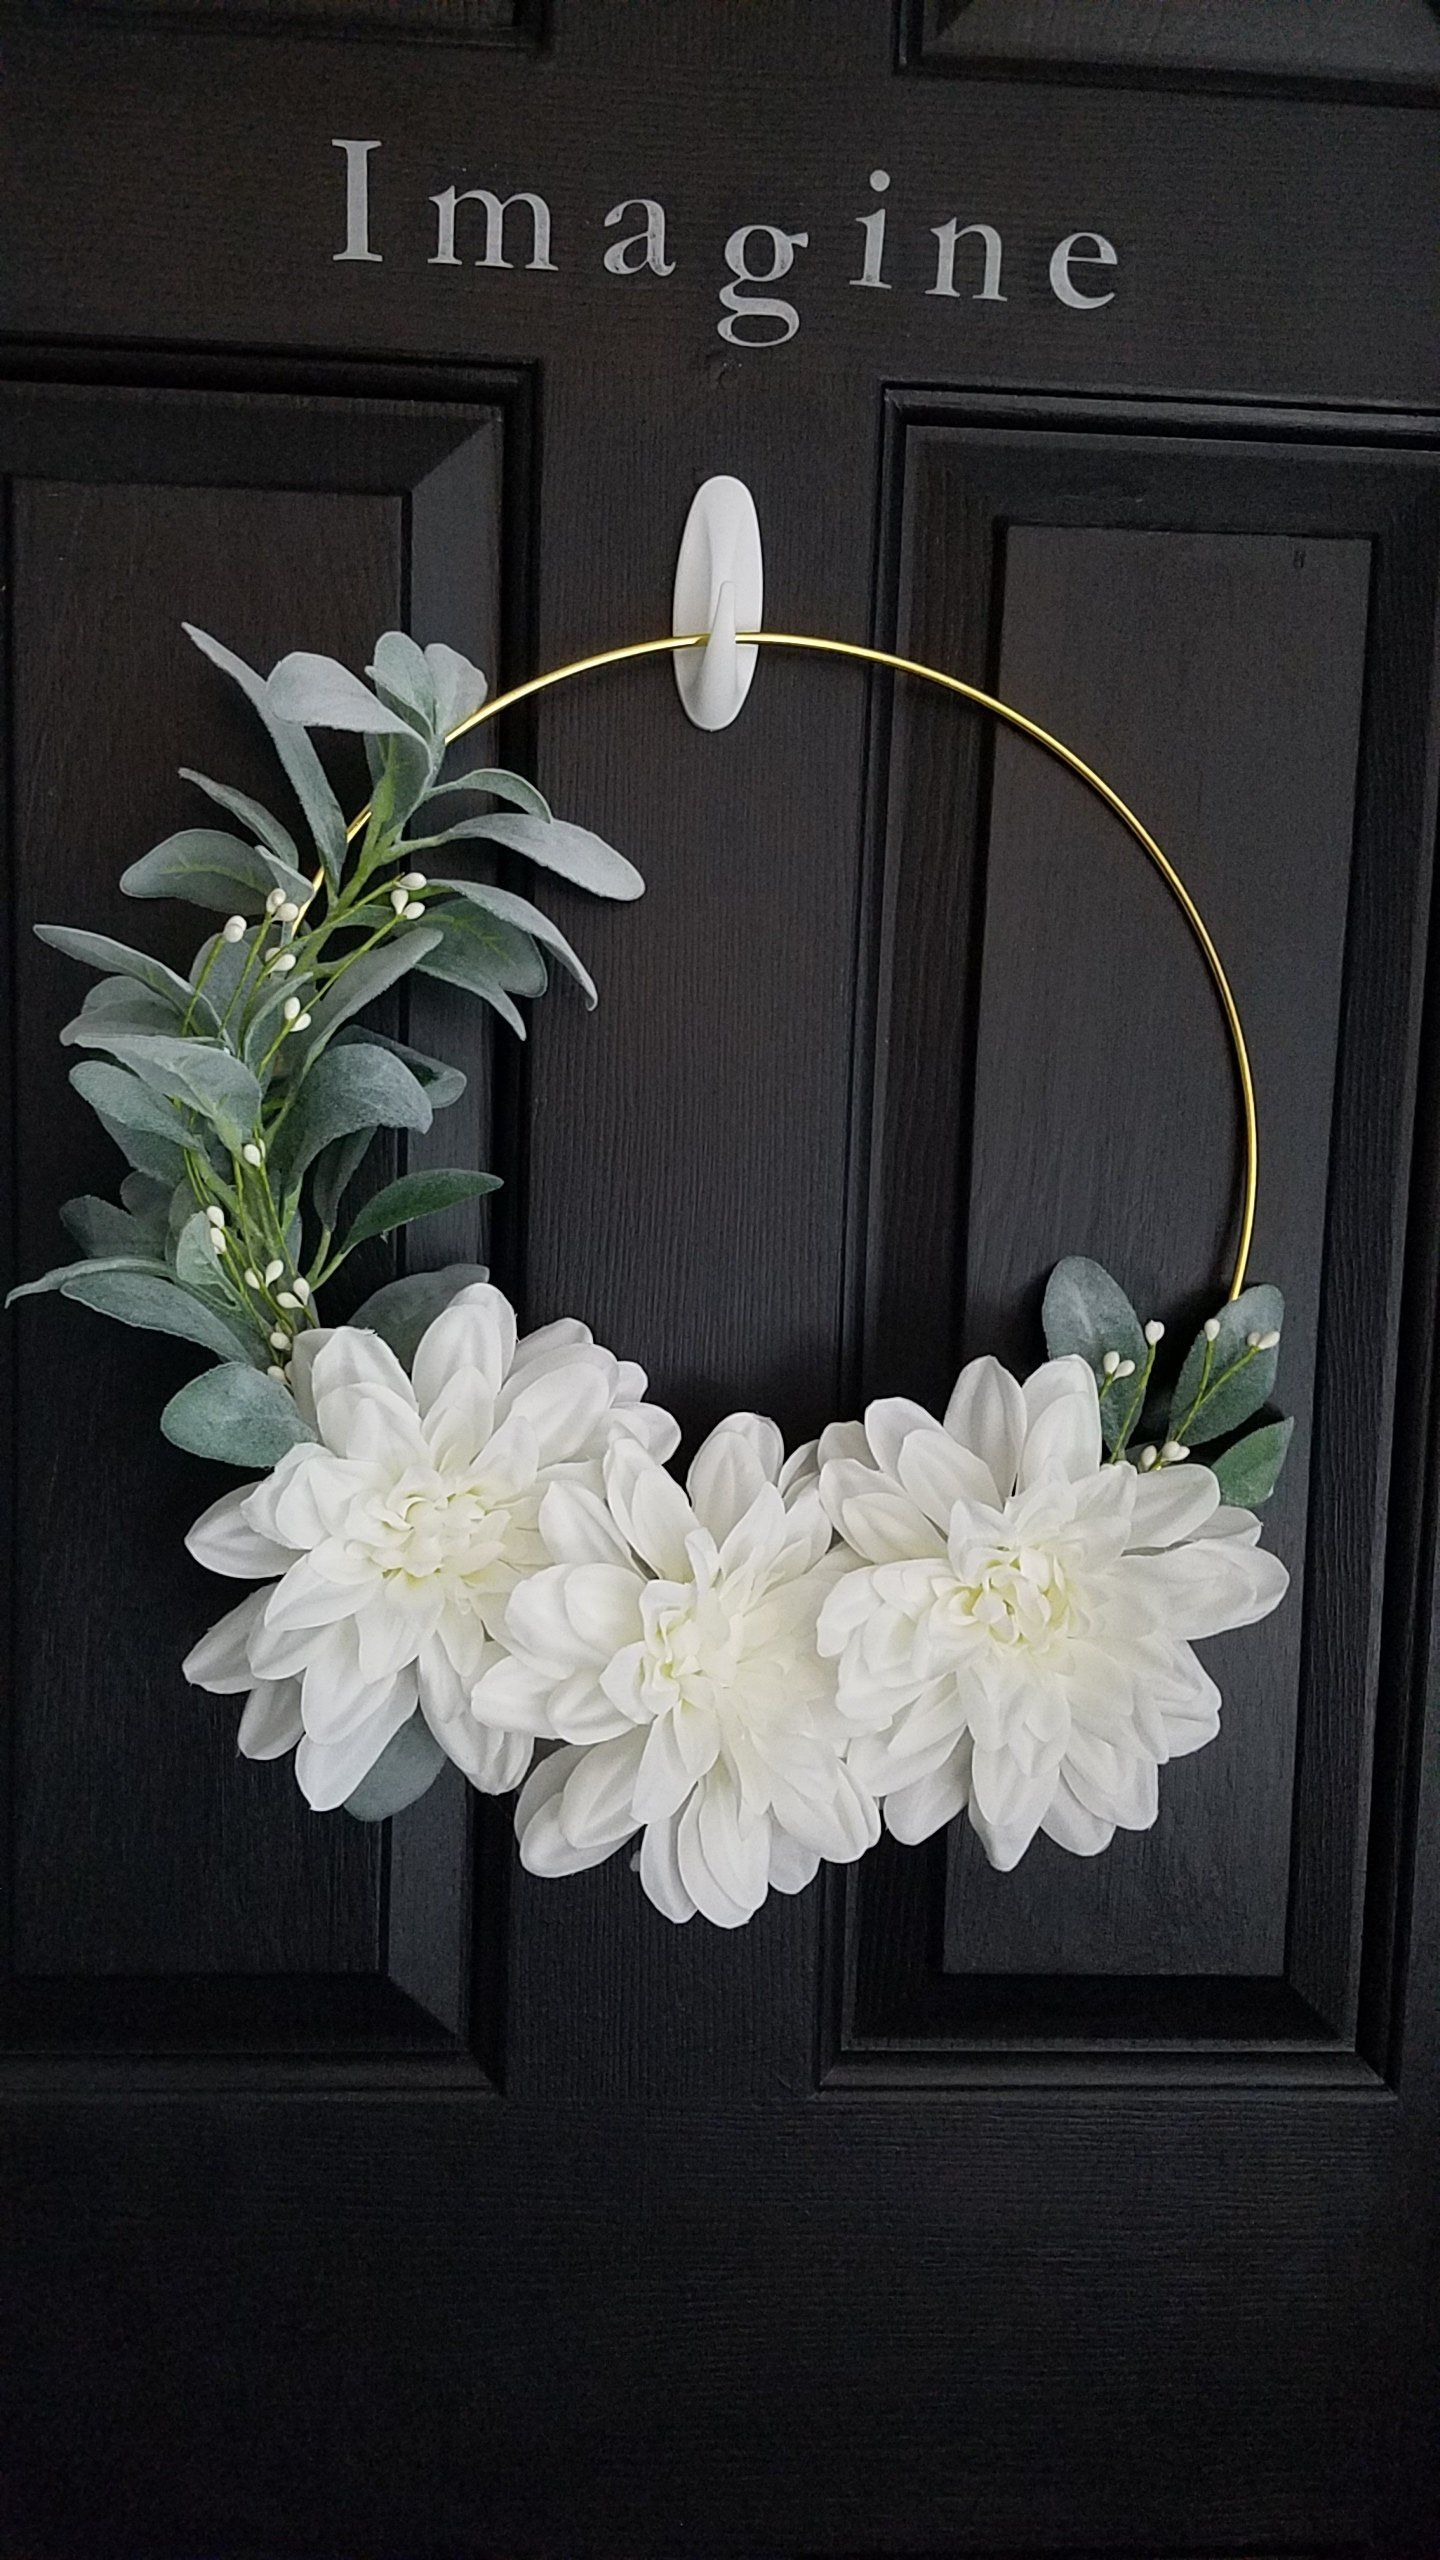 Gold Hoop White Dahlia Wreath Etsy In 2020 White Dahlias Floral Door Wreaths Wreaths